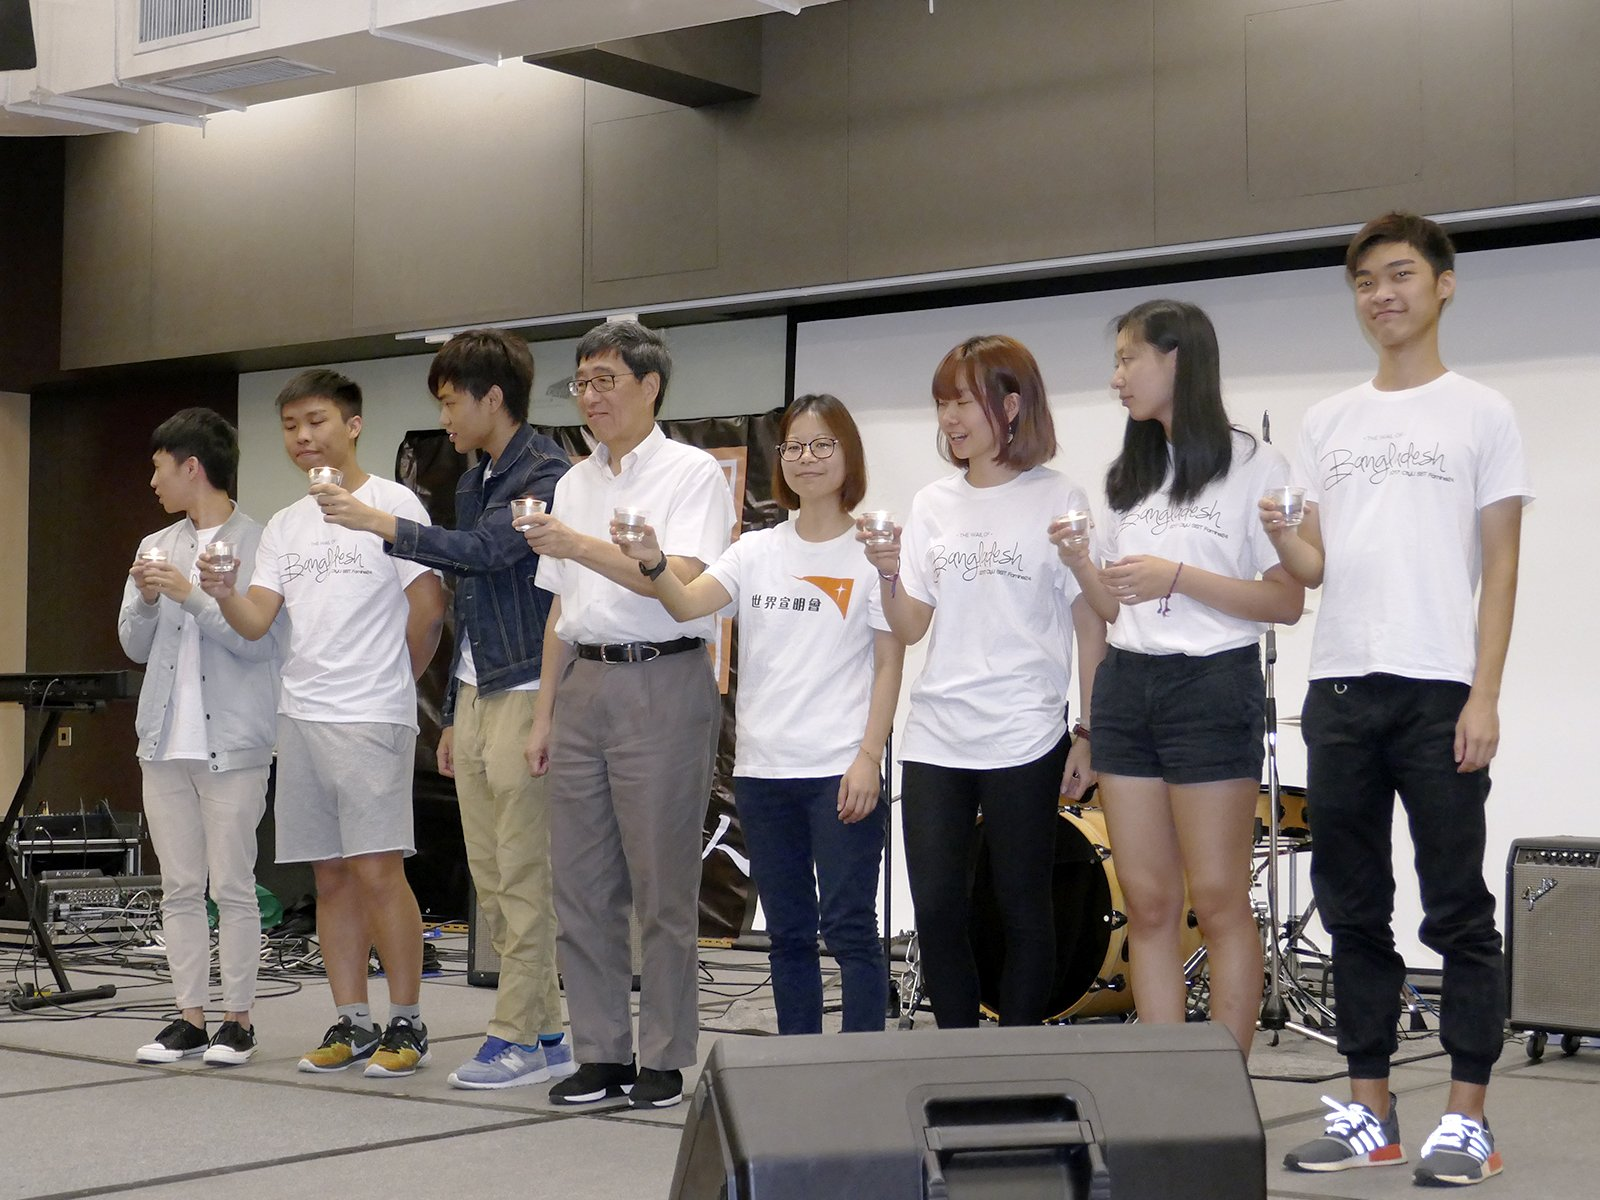 Professor Kuo (fourth from left), Ms Chan (fourth from right), representative of World Vision Hong Kong, and members of the Social Service Team join the candle lighting ceremony.